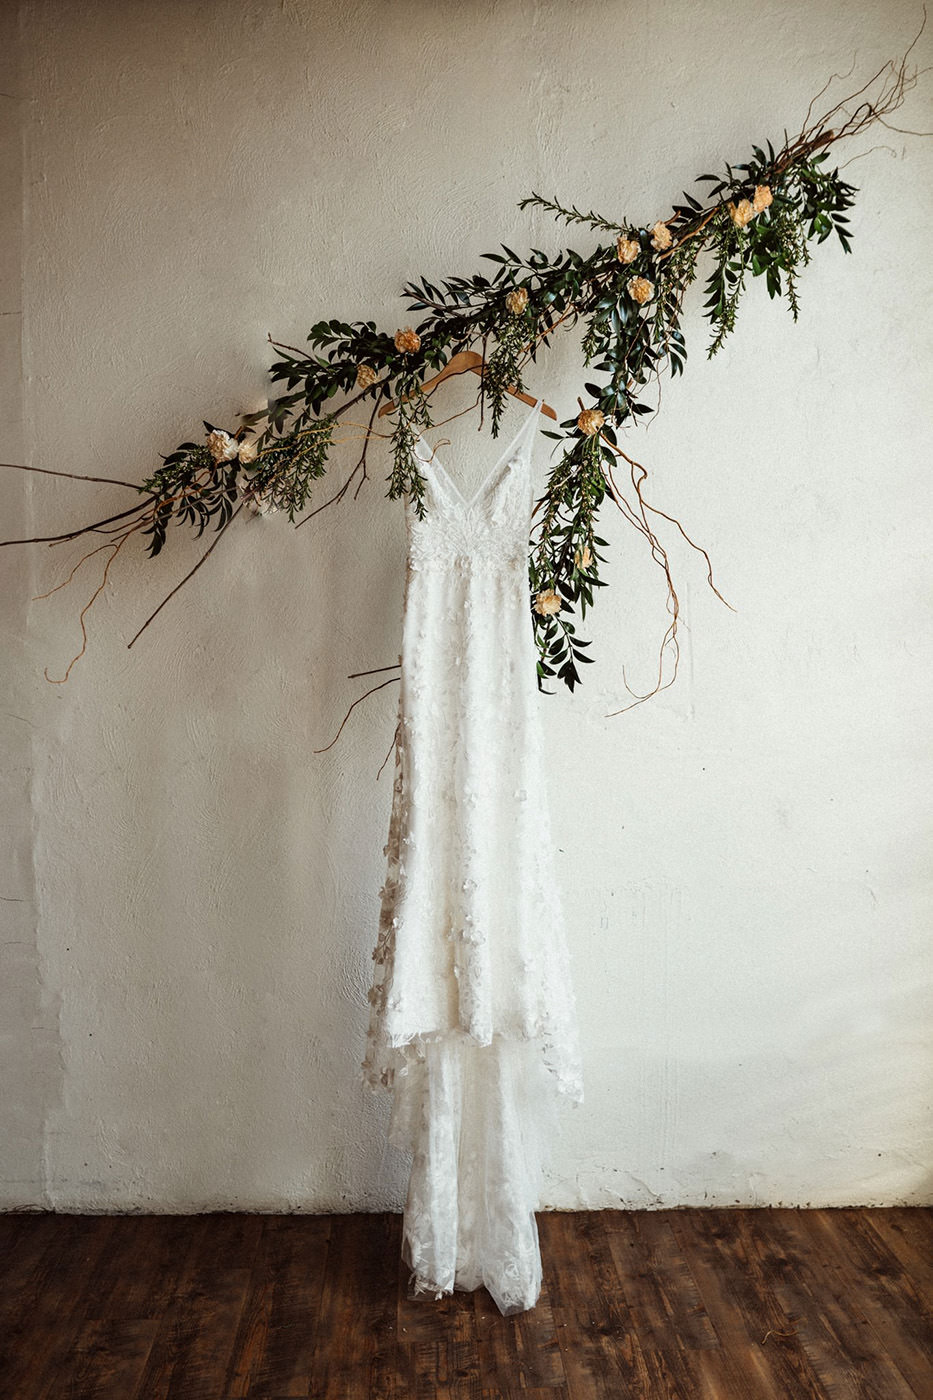 A stunning white wedding dress is hanging on a beautiful decorated stick in a room